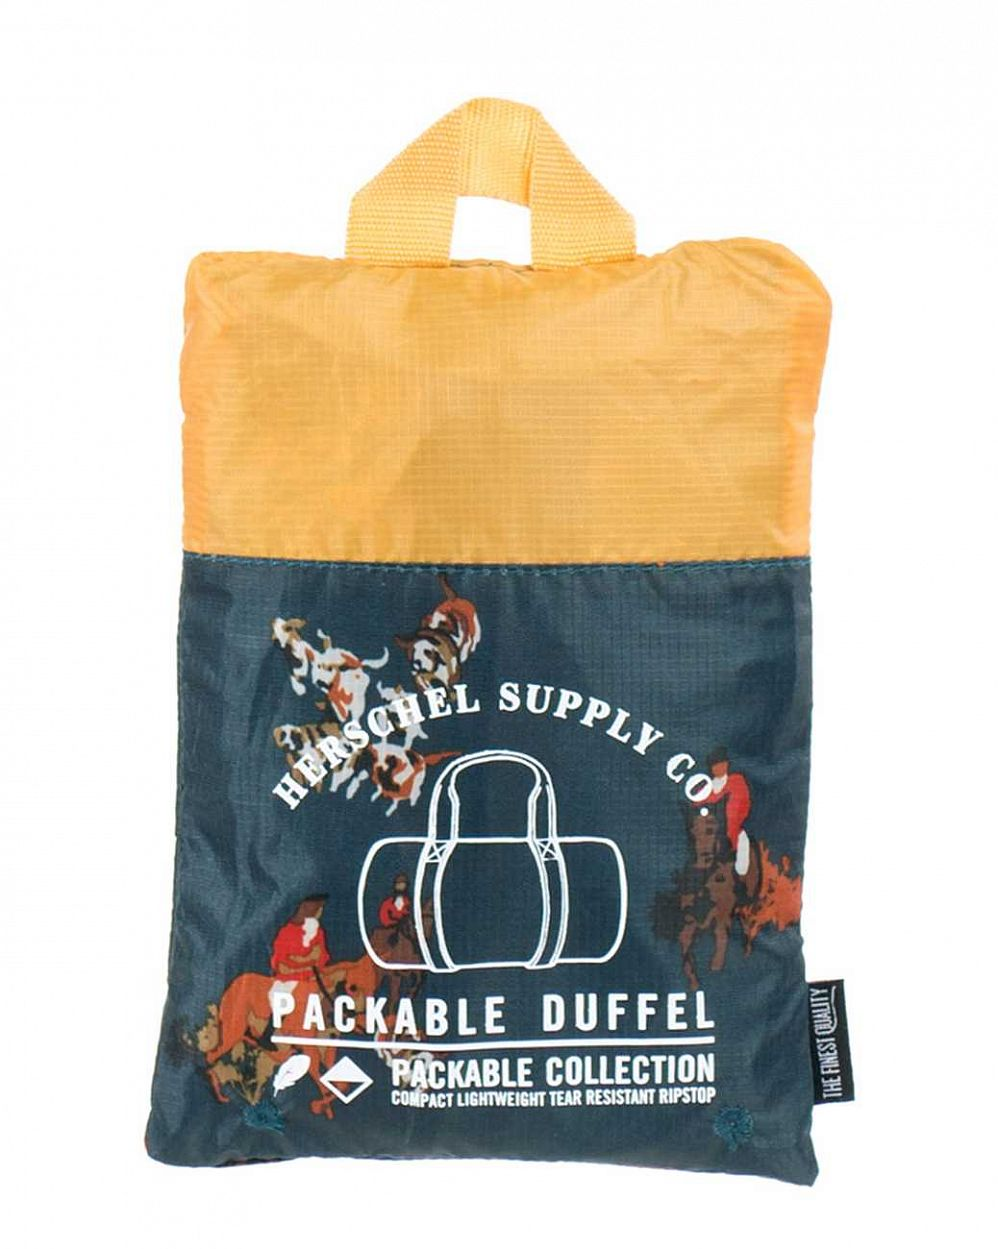 Сумка складная Herschel Packable Duffle Bag Hunt Copper купить в интернете